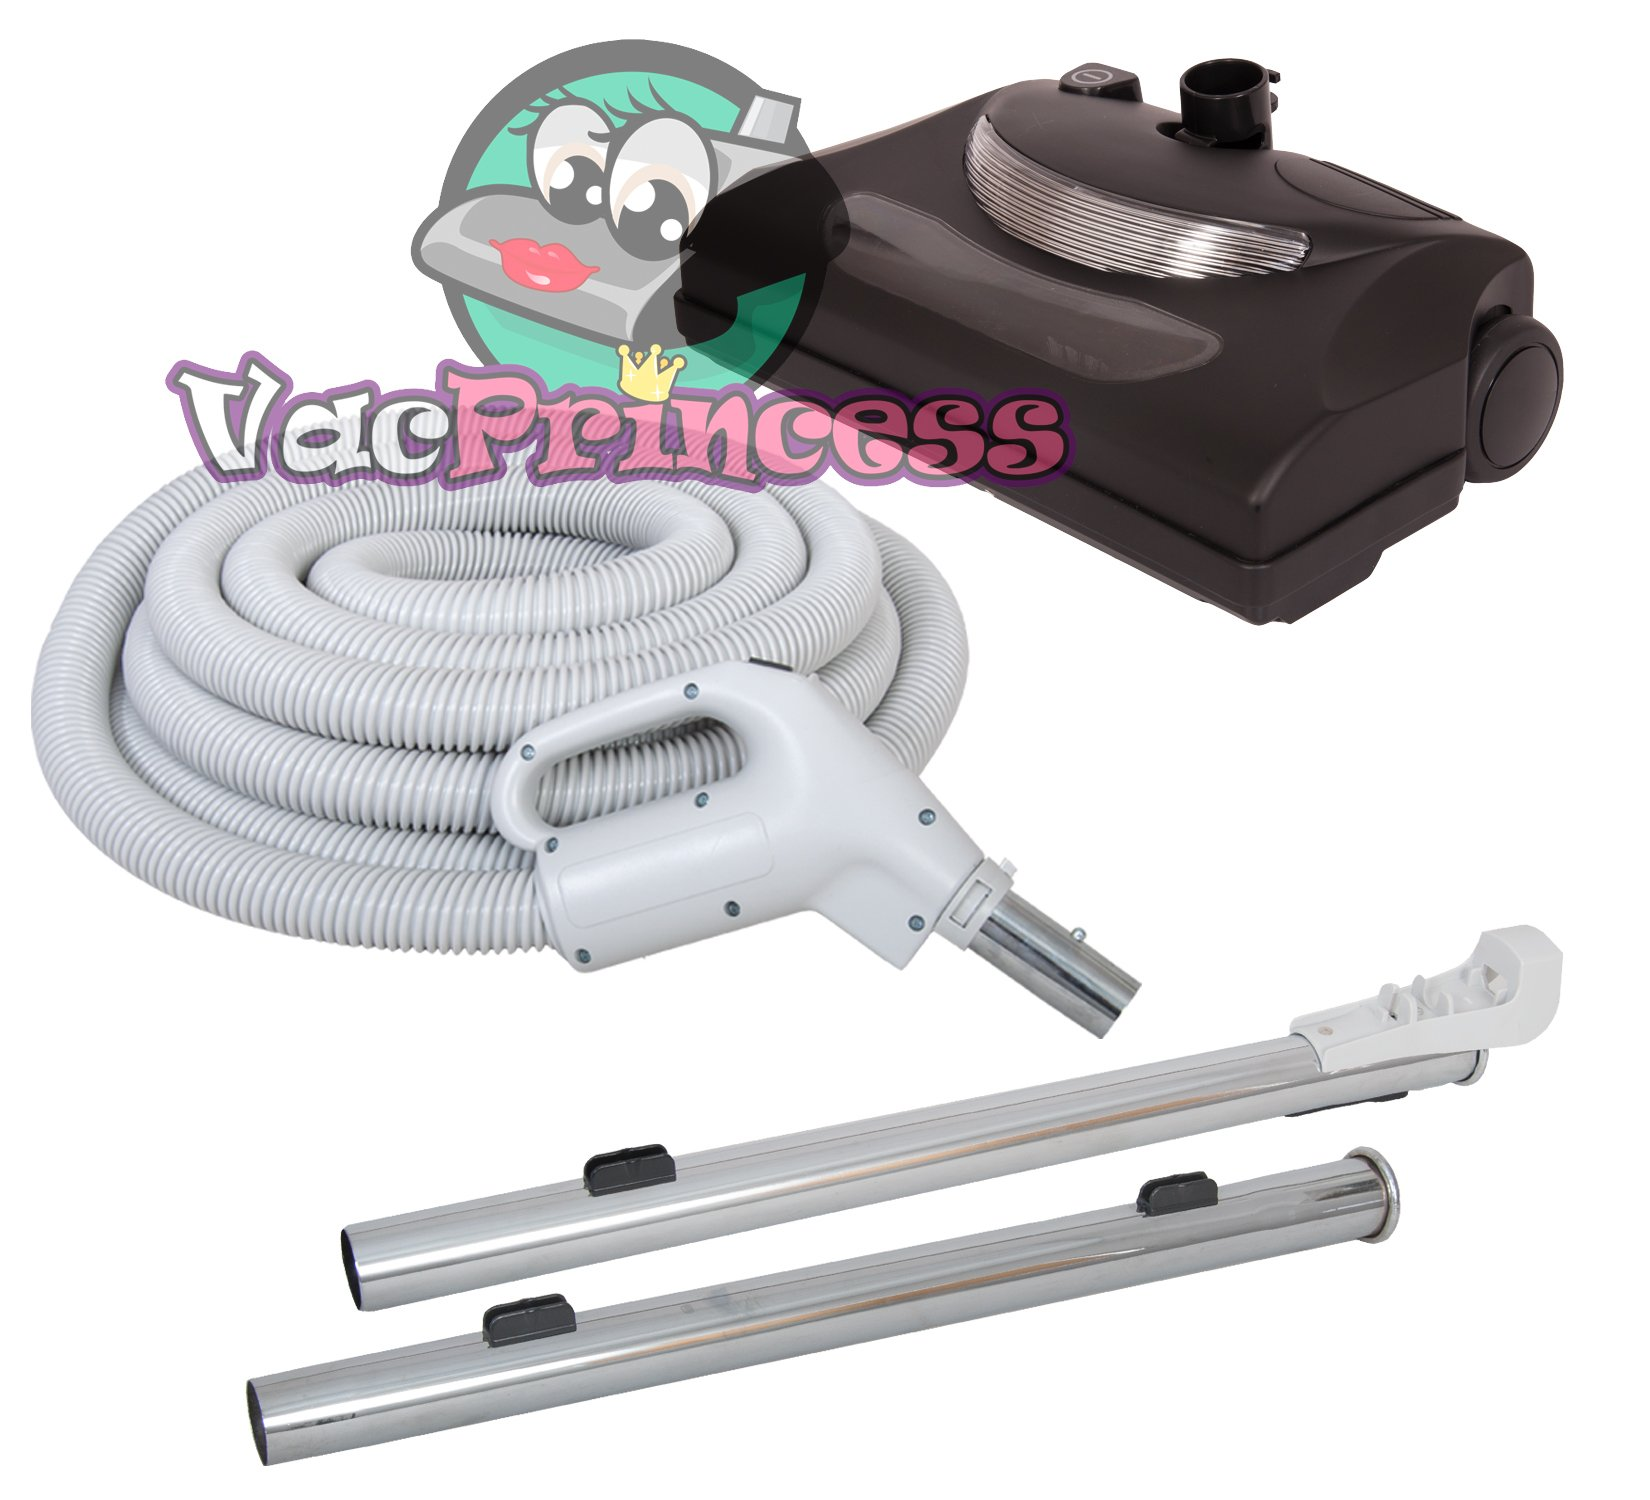 30' Central Vacuum Kit with Hose, Power Head & Wands - Black - Works with all brands of central vacuum units